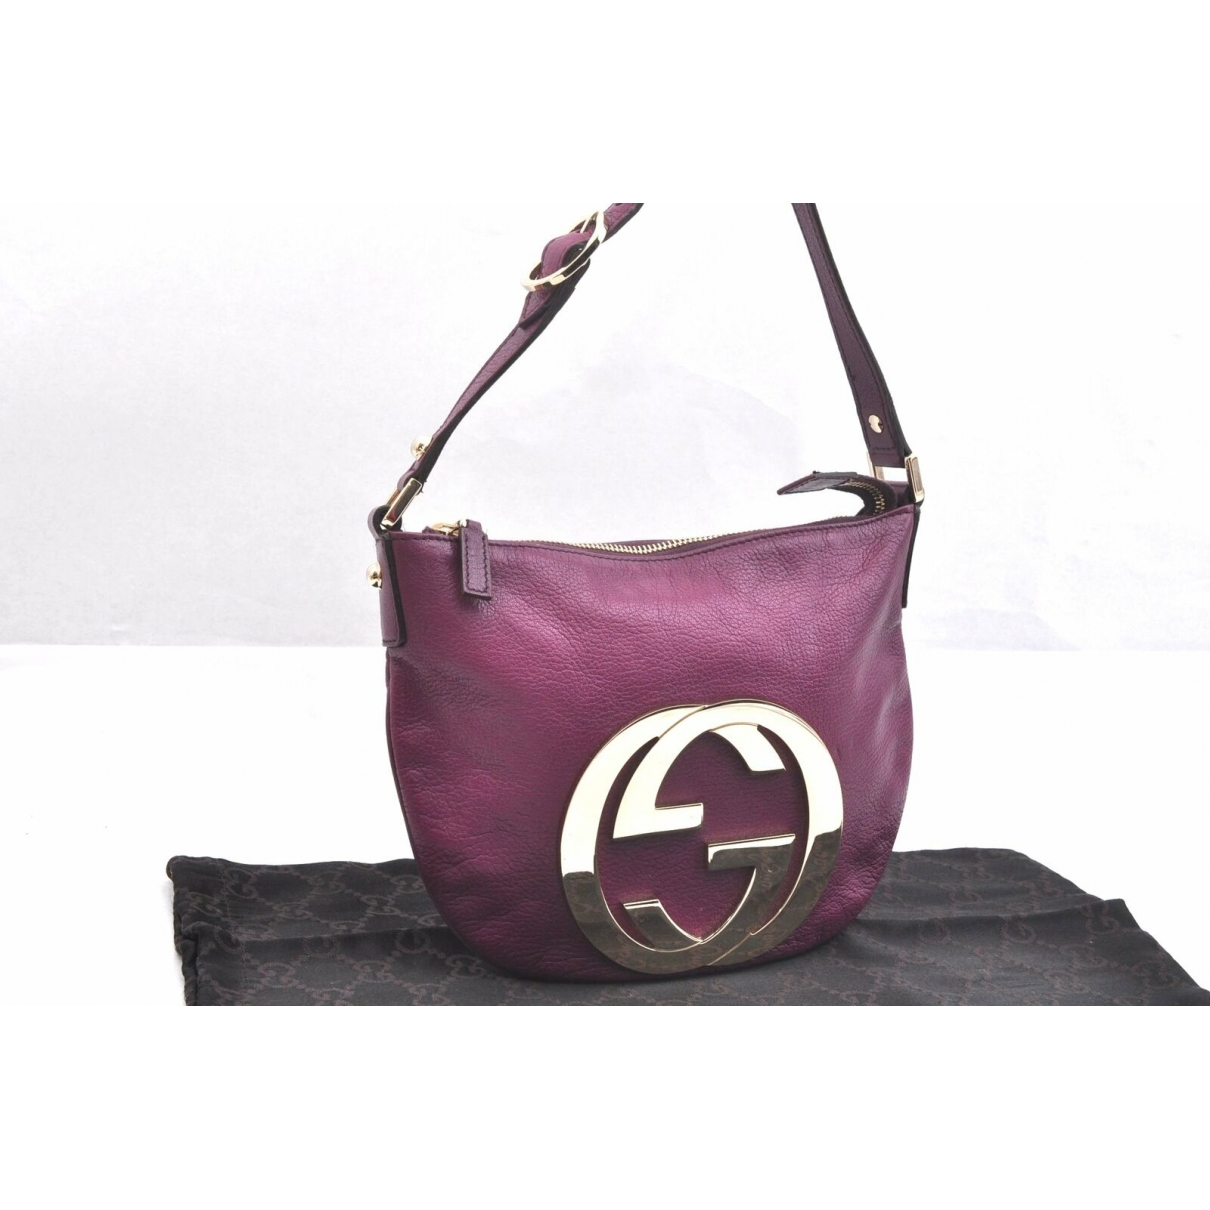 Gucci \N Purple Leather handbag for Women \N